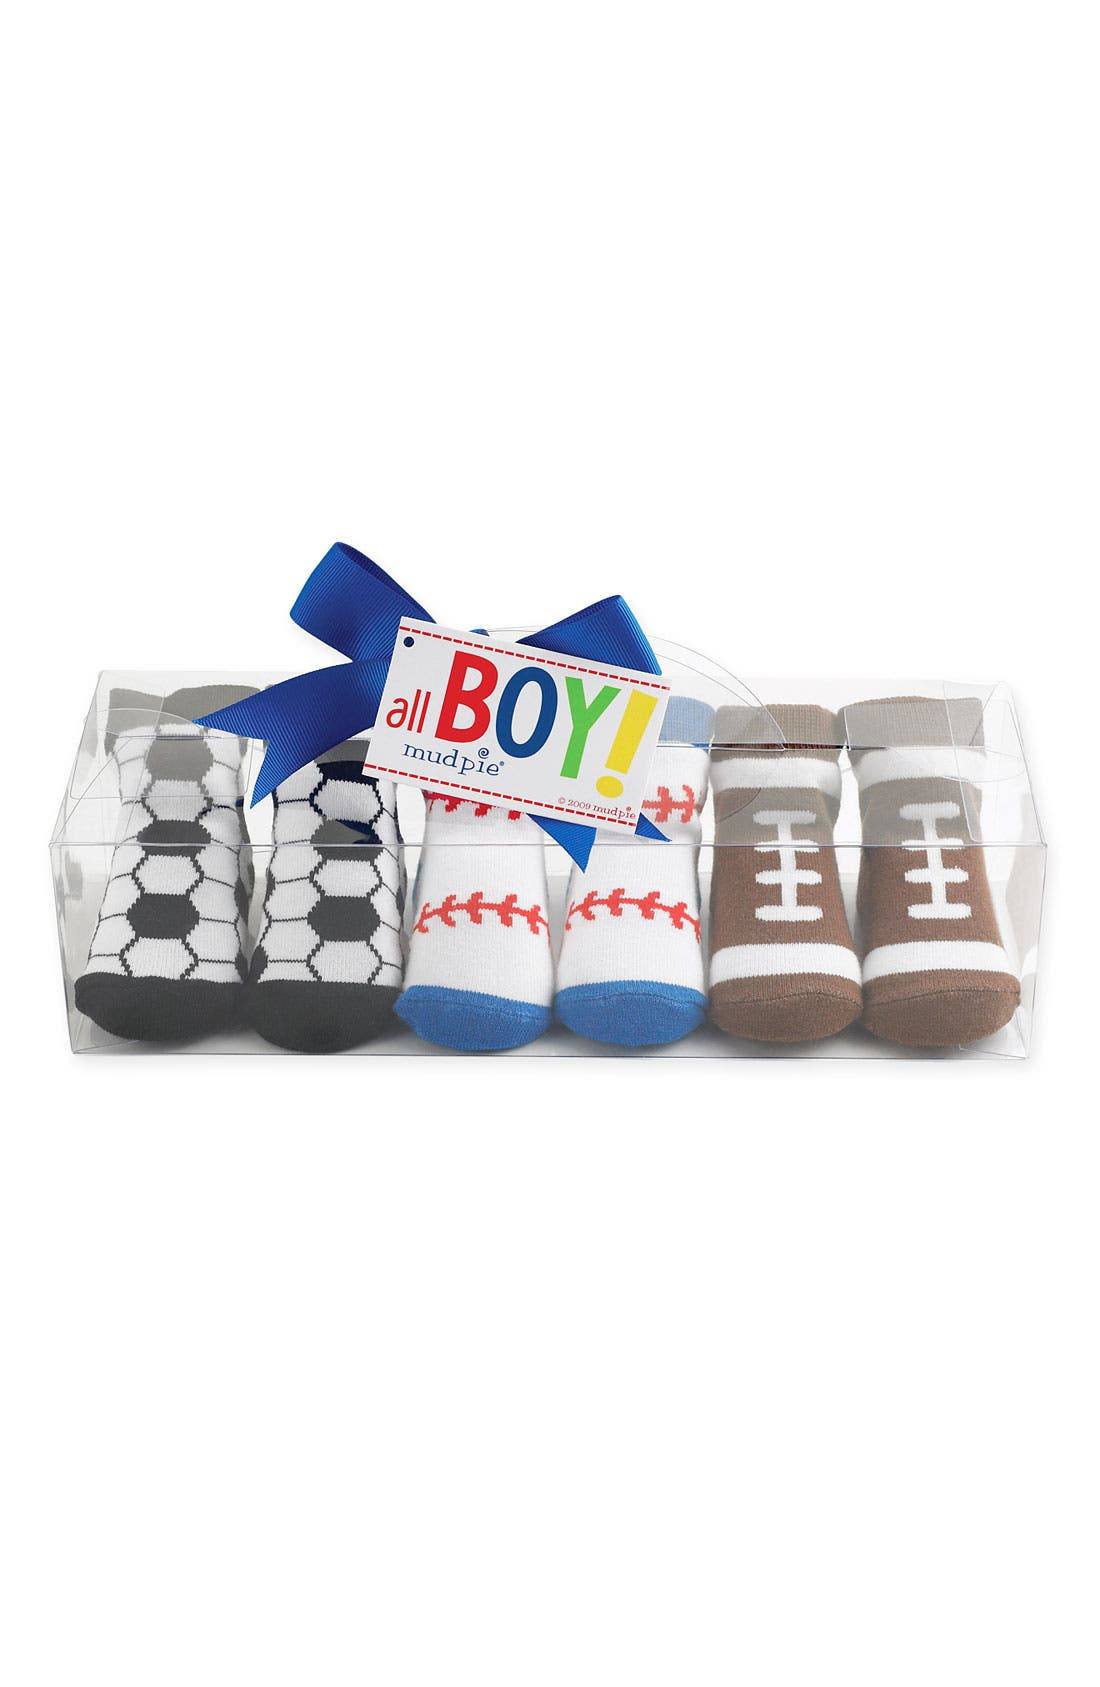 Alternate Image 1 Selected - Mud Pie Socks Set (3-Pack) (Baby Boys)